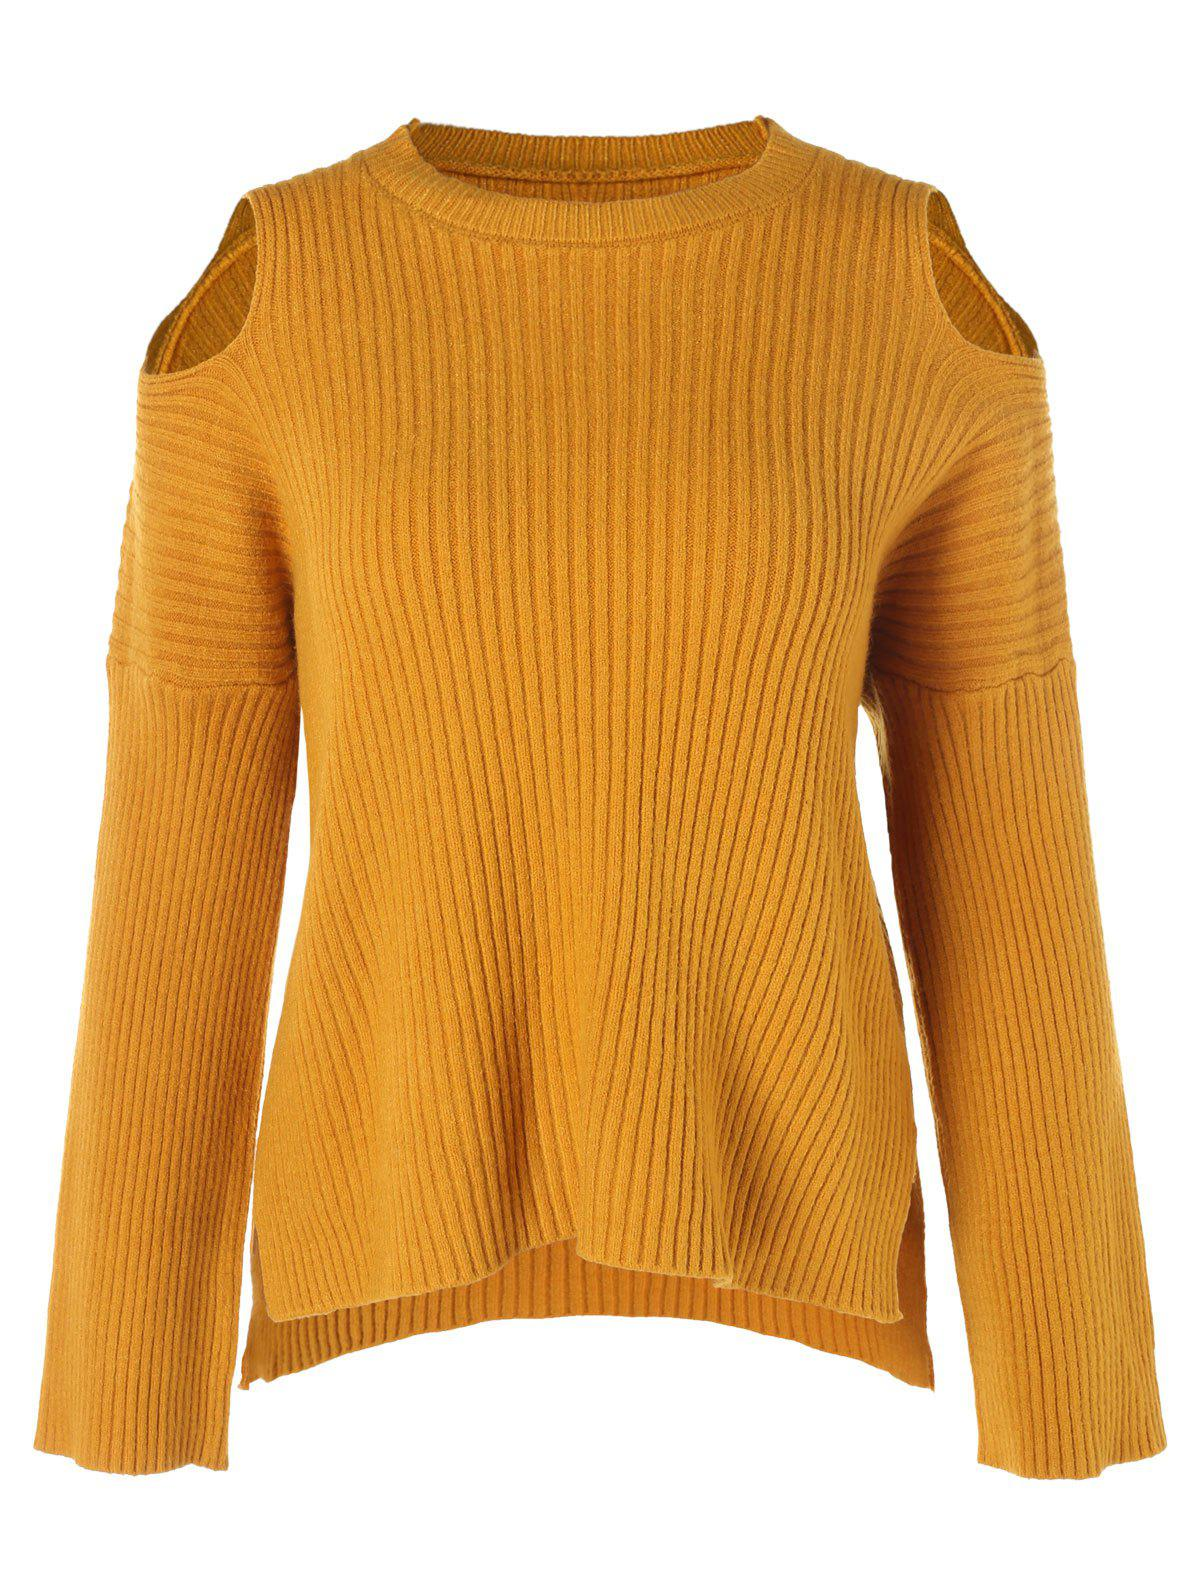 Chic Drop Shoulder Long Sleeve Ribbed Knitwear